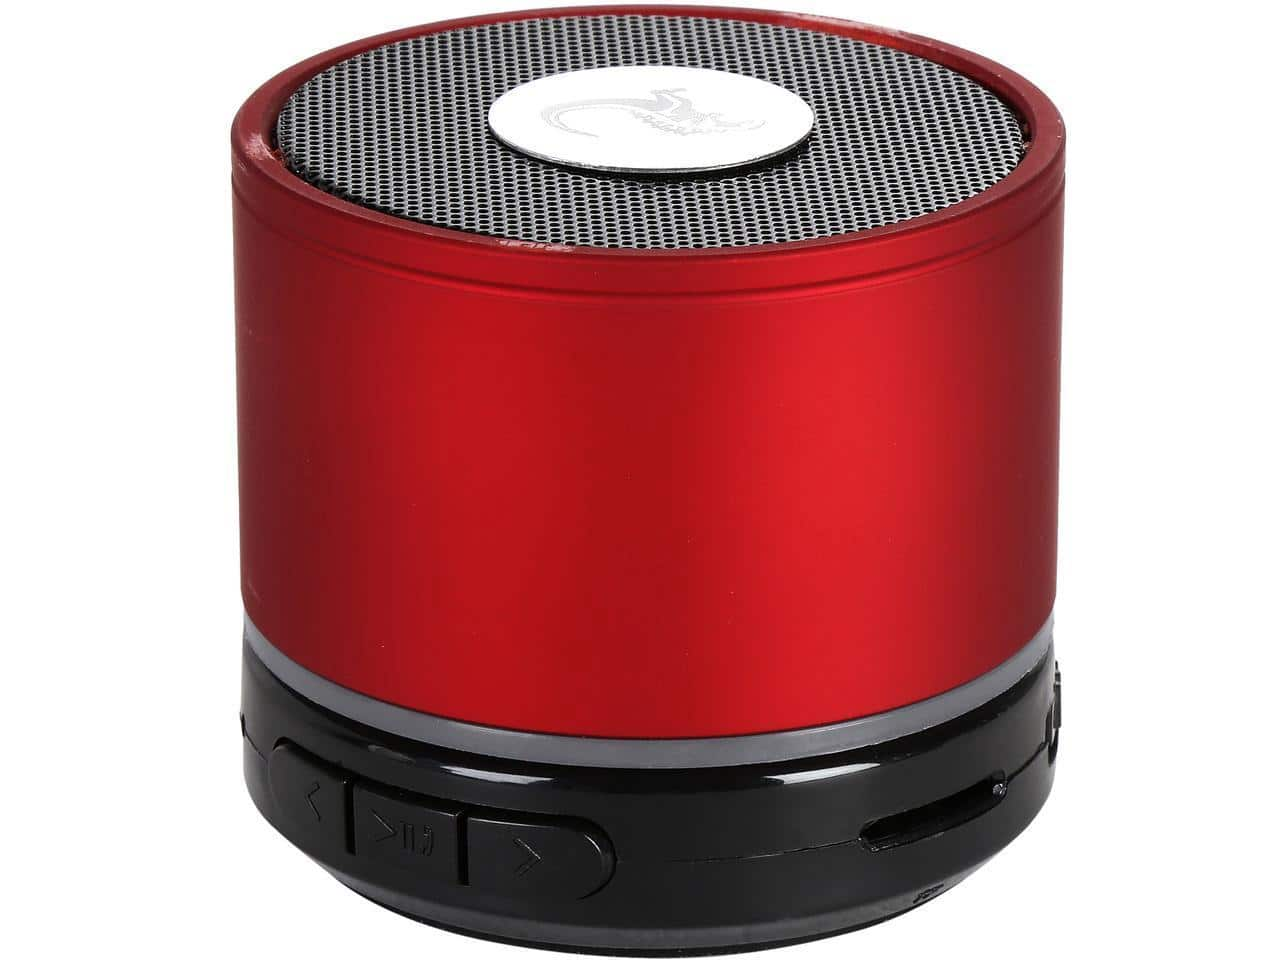 Refurbished Krazilla Red Bluetooth 3.0 Portable Speaker for Free After Rebate + Free Ship @ Newegg